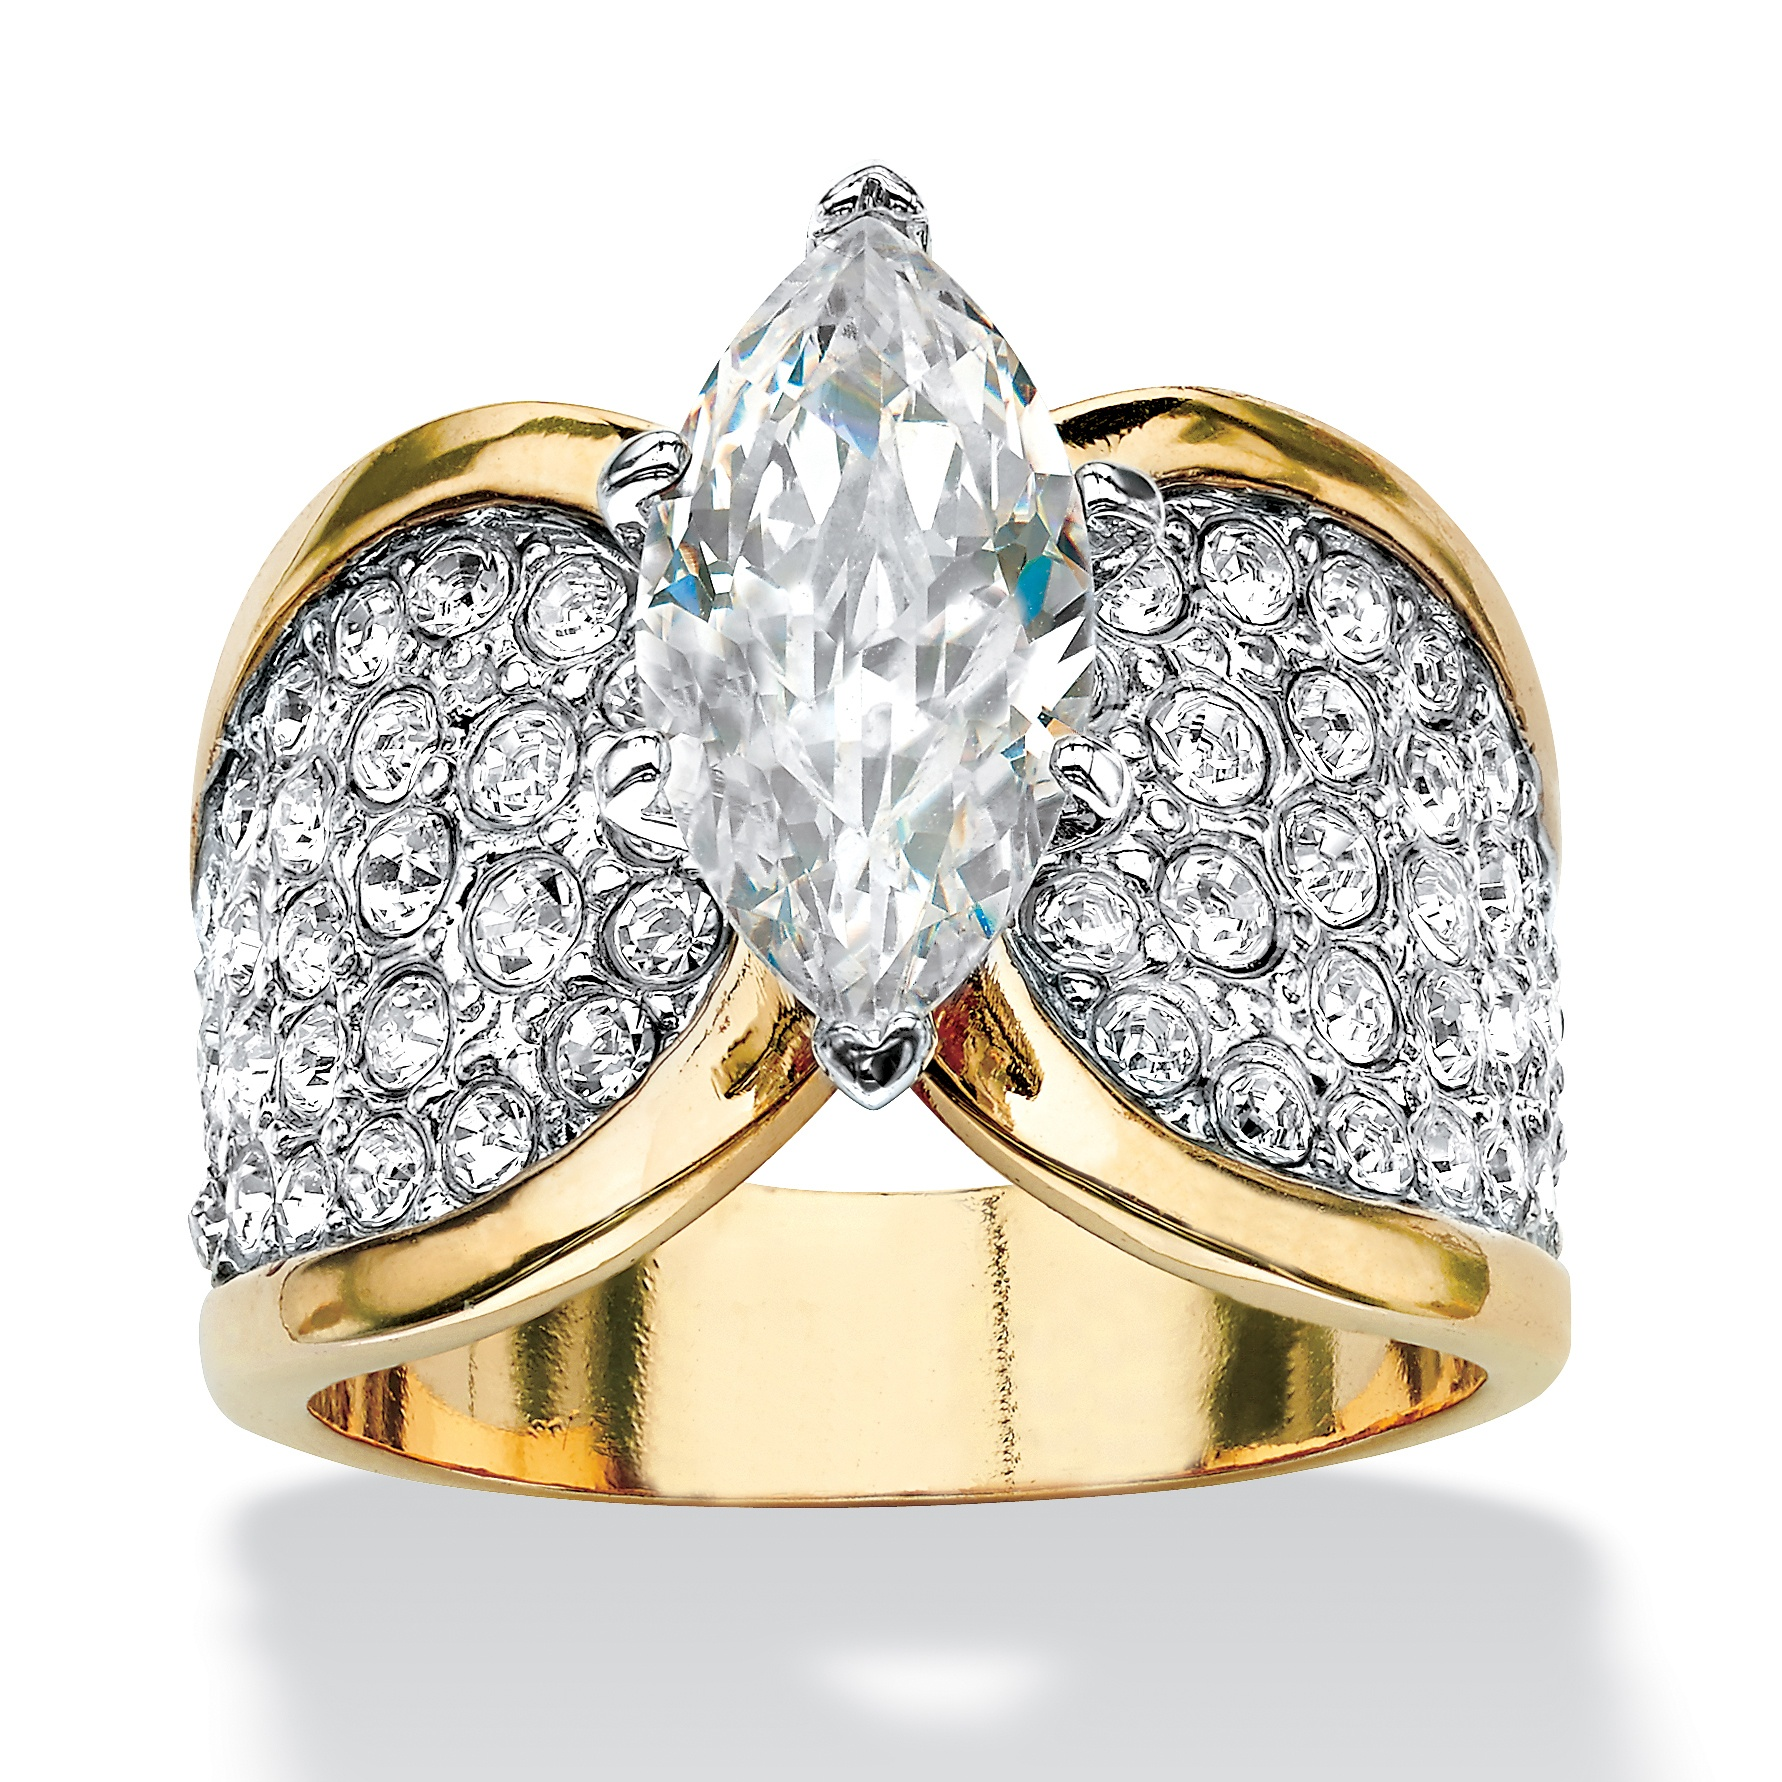 Palm Beach Jewelry 18K Yellow Gold Plated Marquise Cut Cubic Zirconia Bridal Ring Set